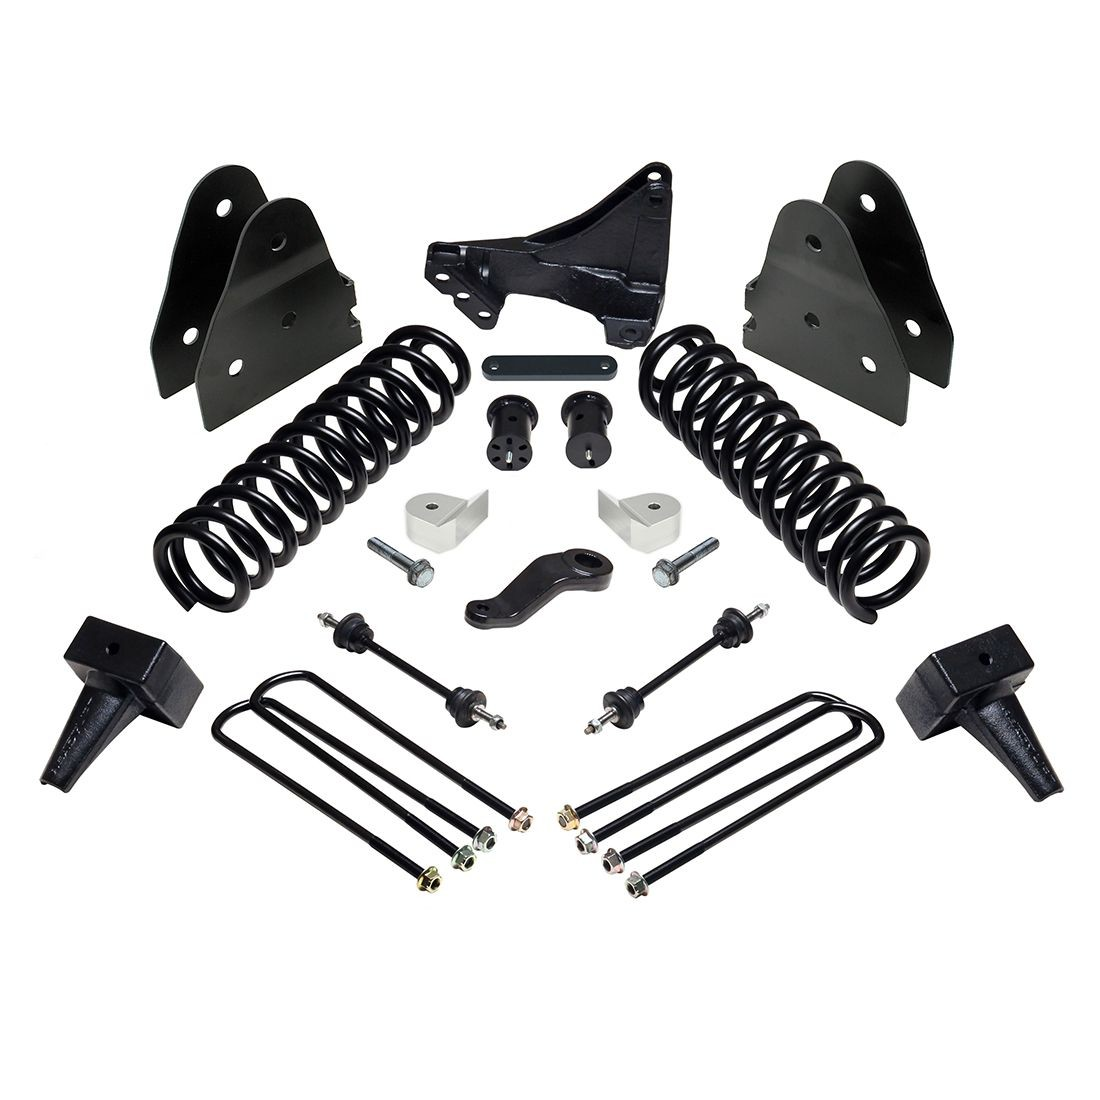 "ReadyLift 6.5"" Lift Kit - Ford Super Duty F250/F350 4WD (2-pc Drive Shaft Only) 2017-2018"